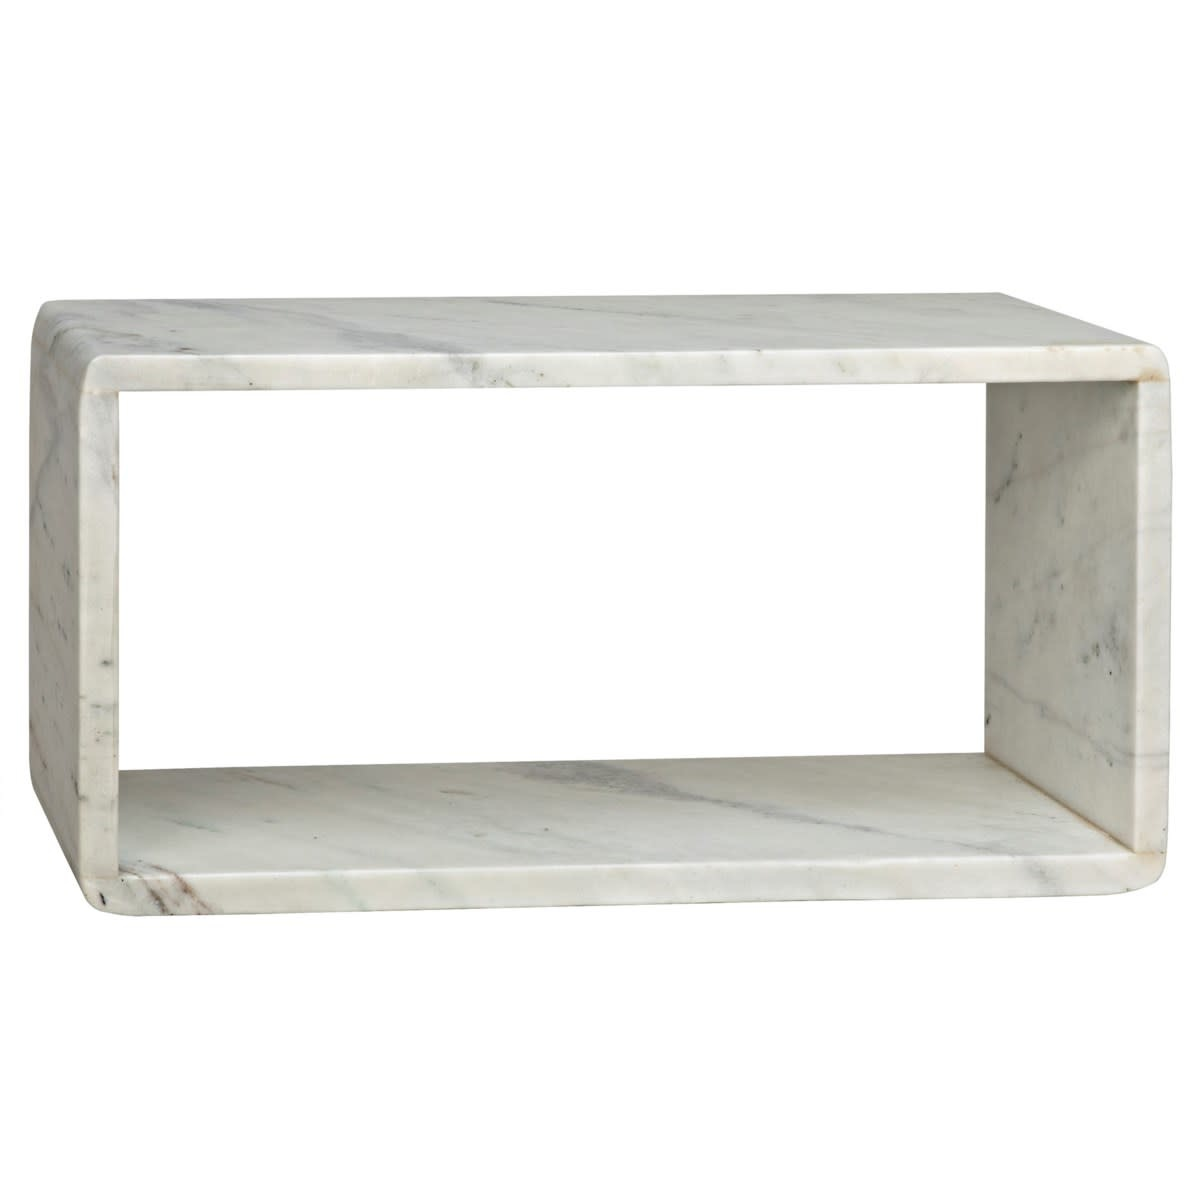 Foundation Side Table